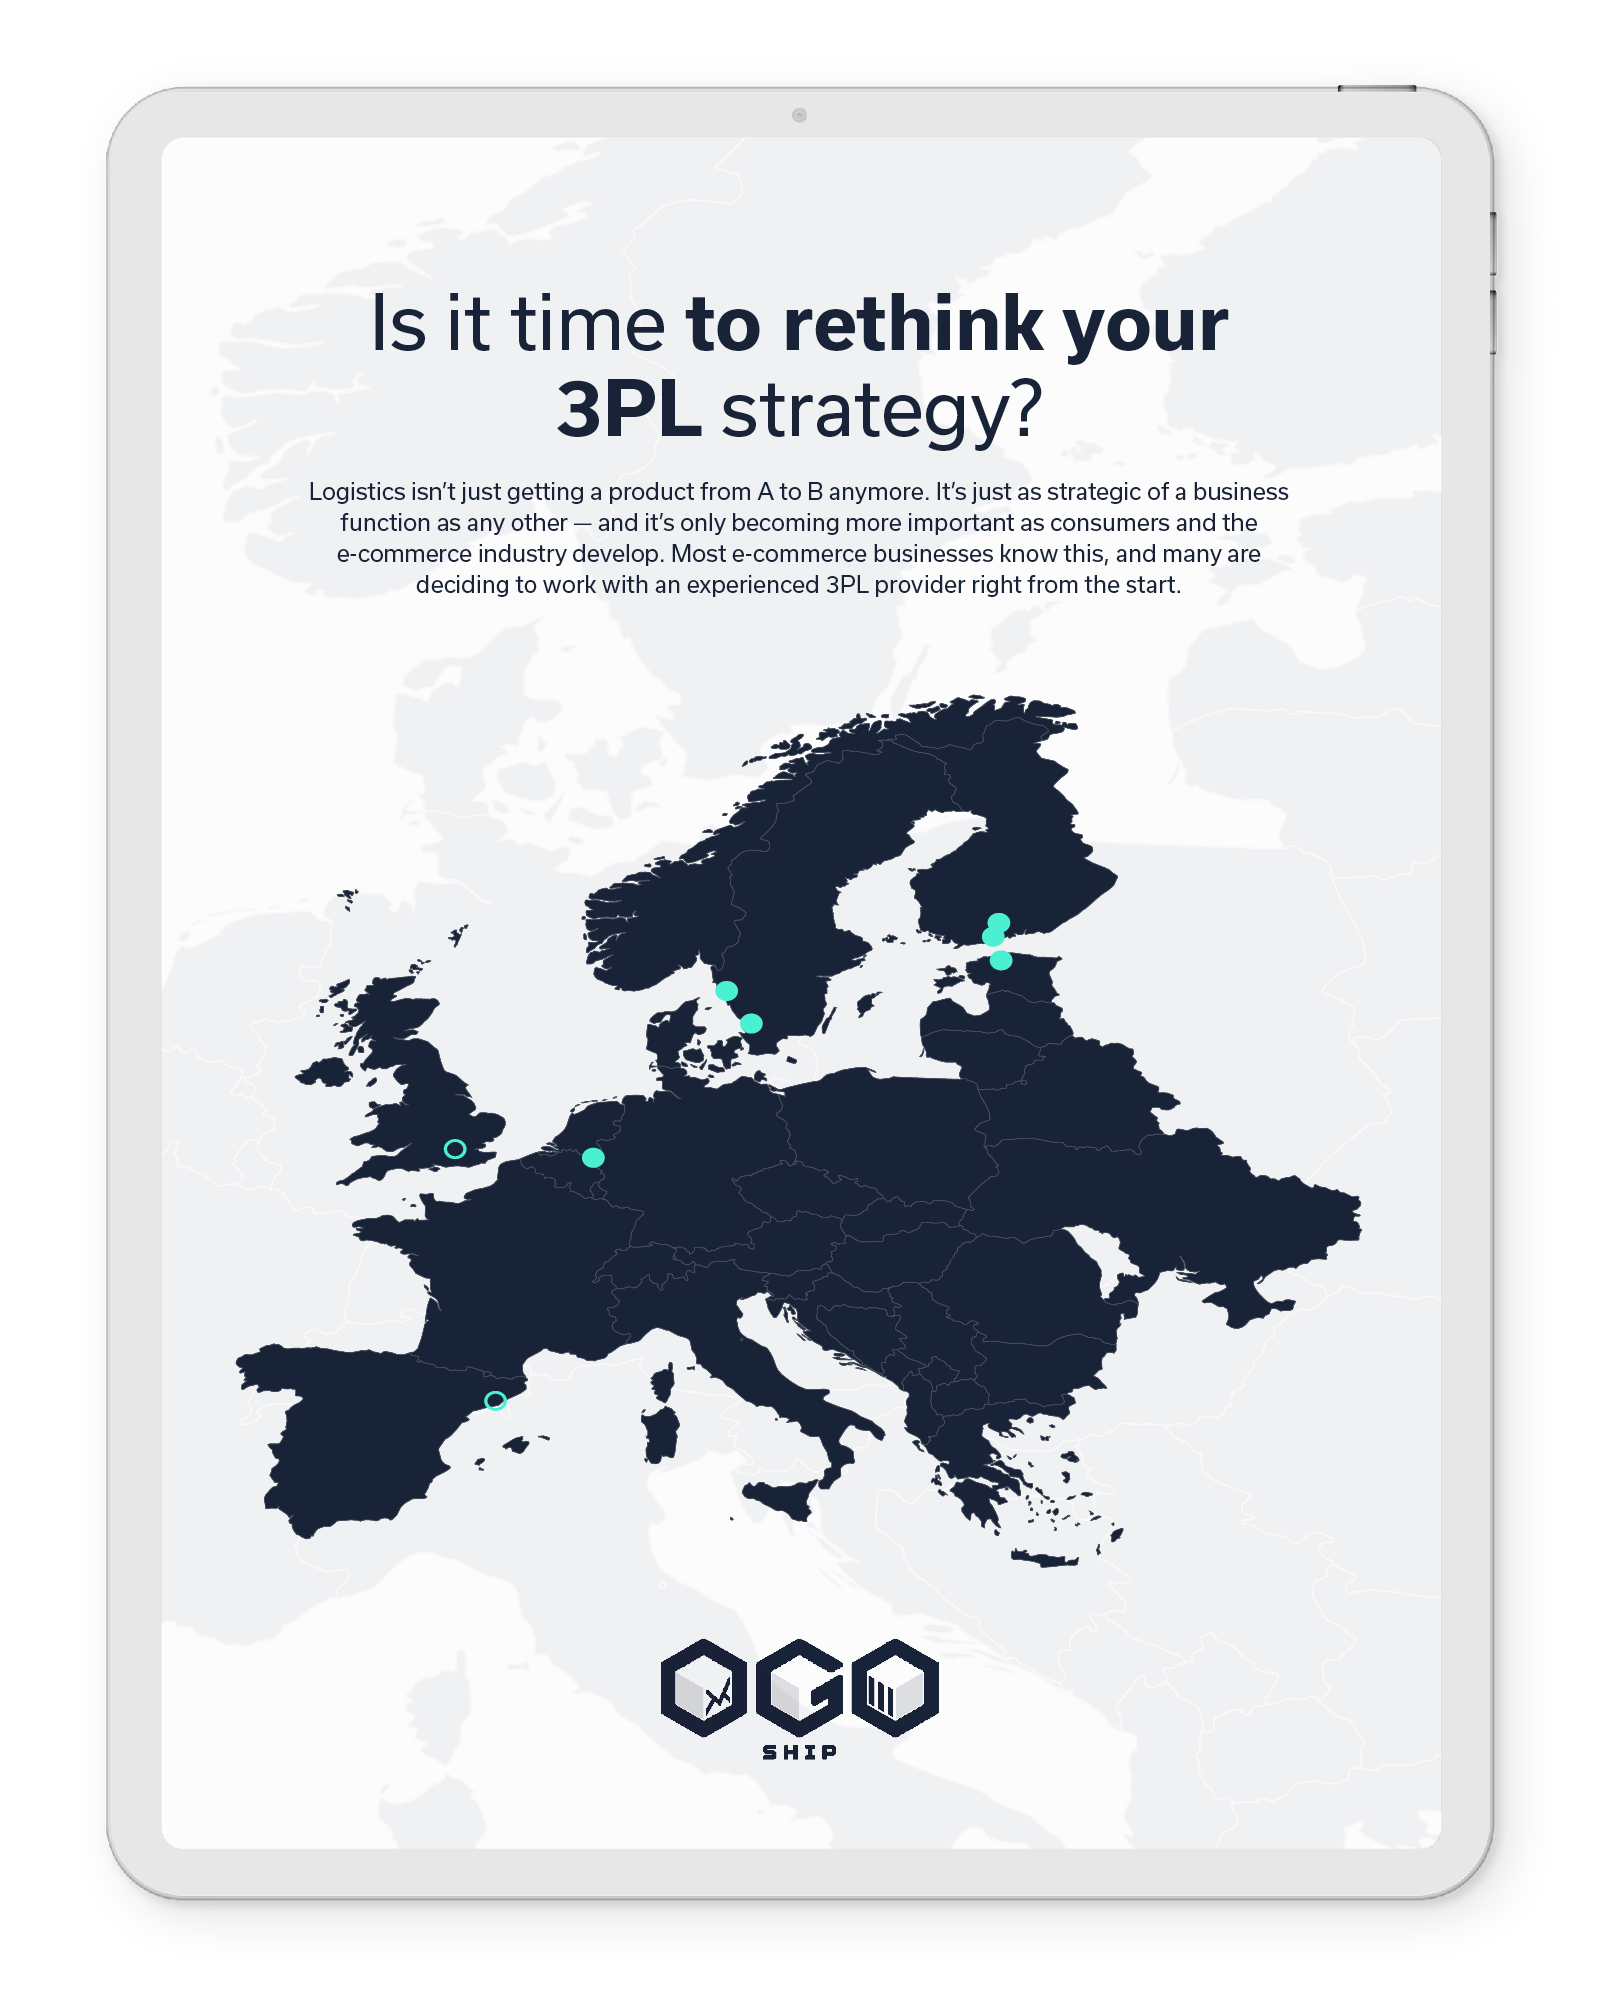 Is it time to rethink your 3PL strategy?